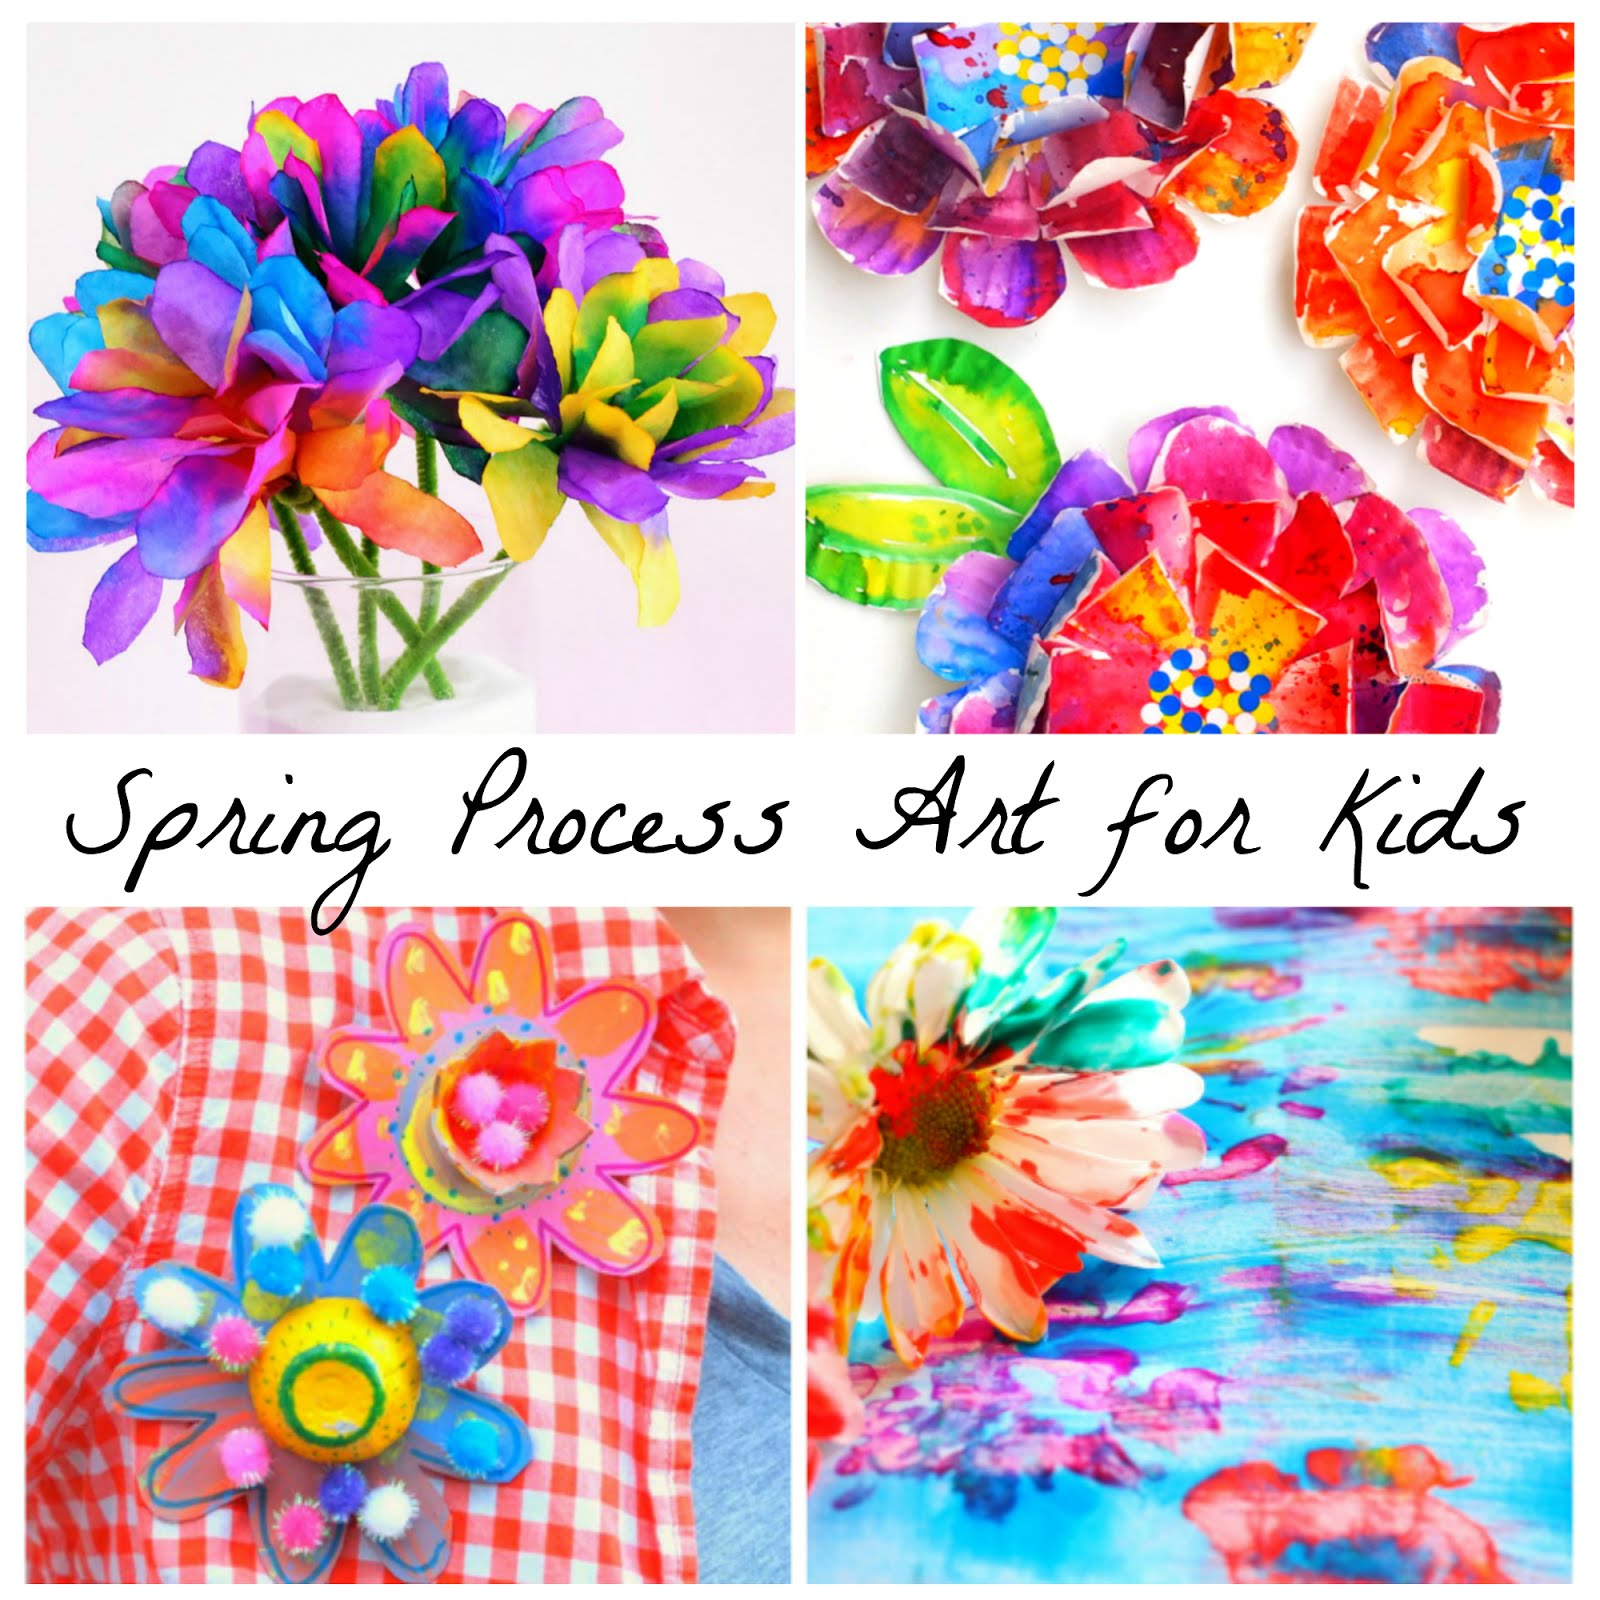 12 beautiful spring flower process art ideas for kids 12 beautiful spring flower process art ideas for kids from fun at home with kids mightylinksfo Choice Image